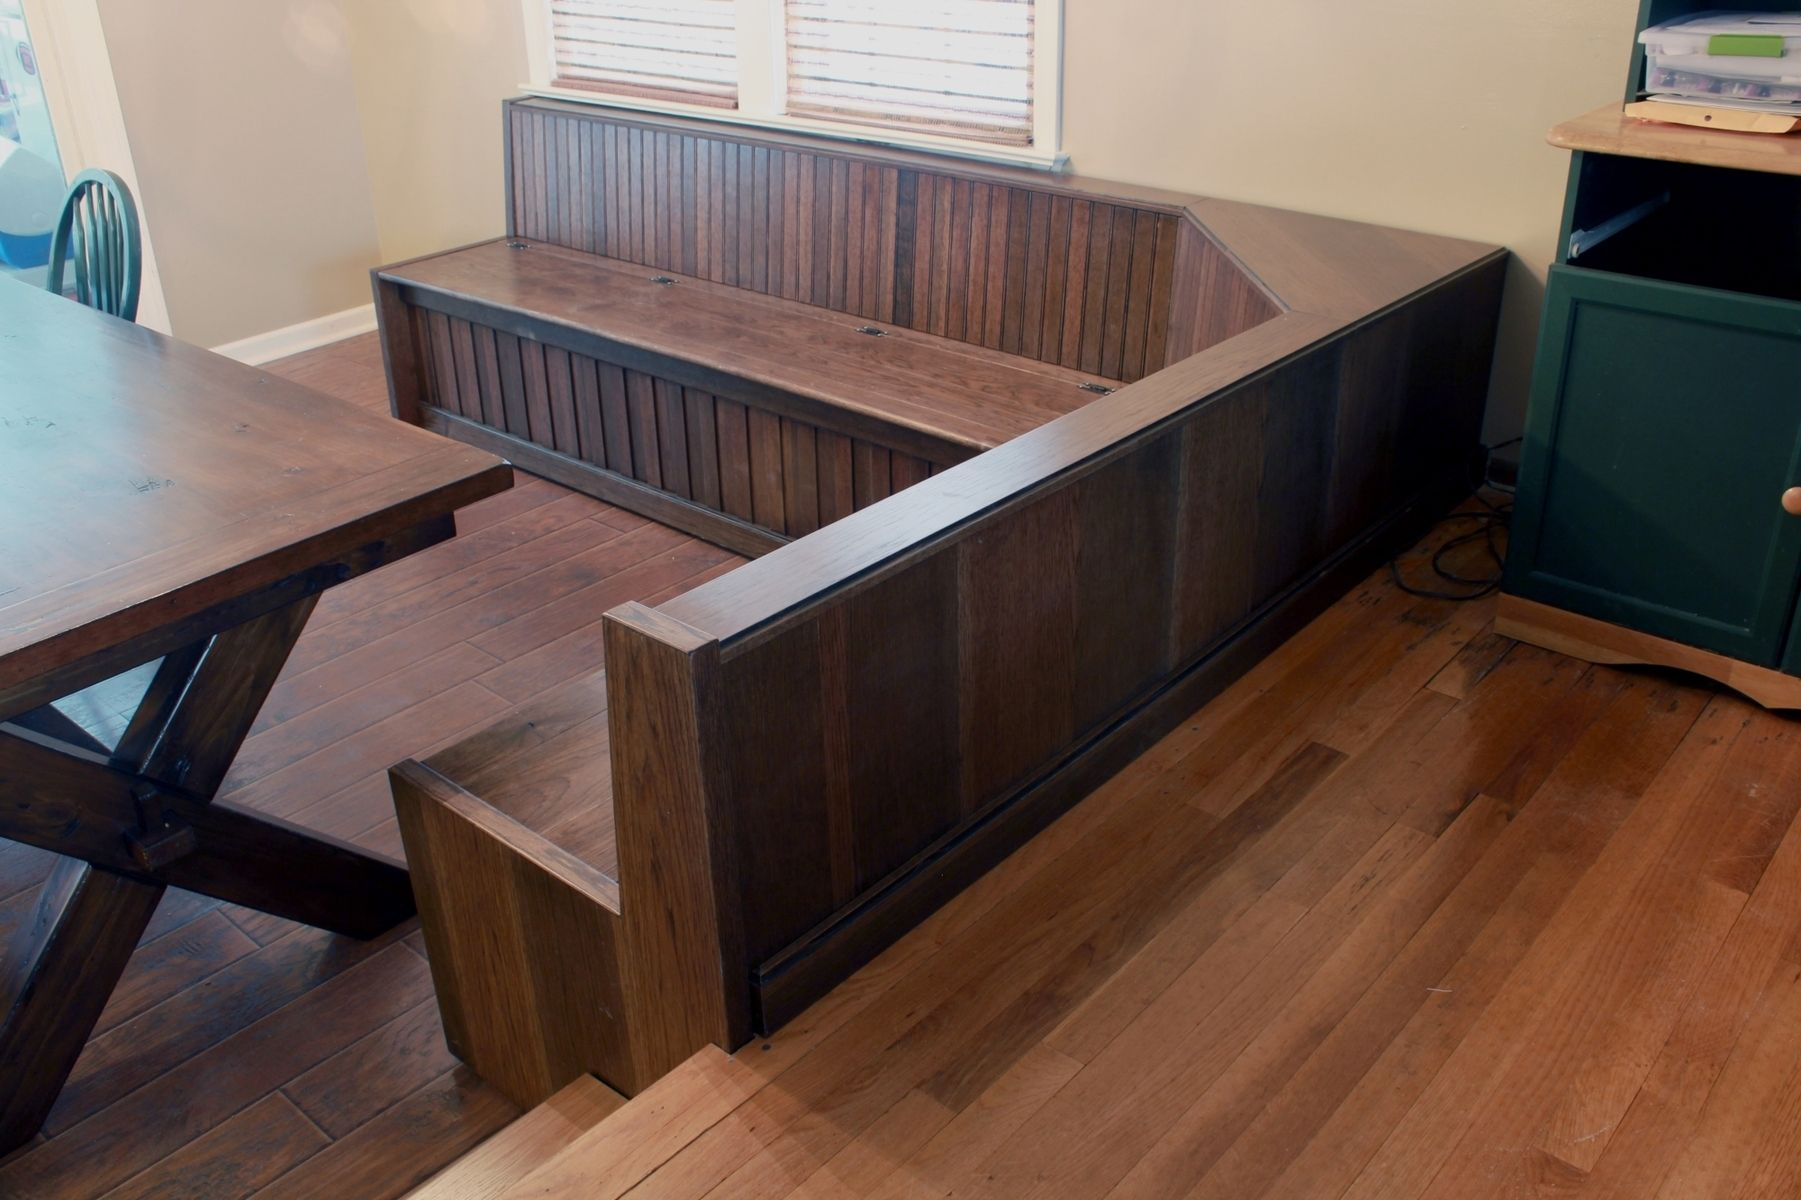 Hand crafted custom built in dining room bench seating by for Built in kitchen seating ideas